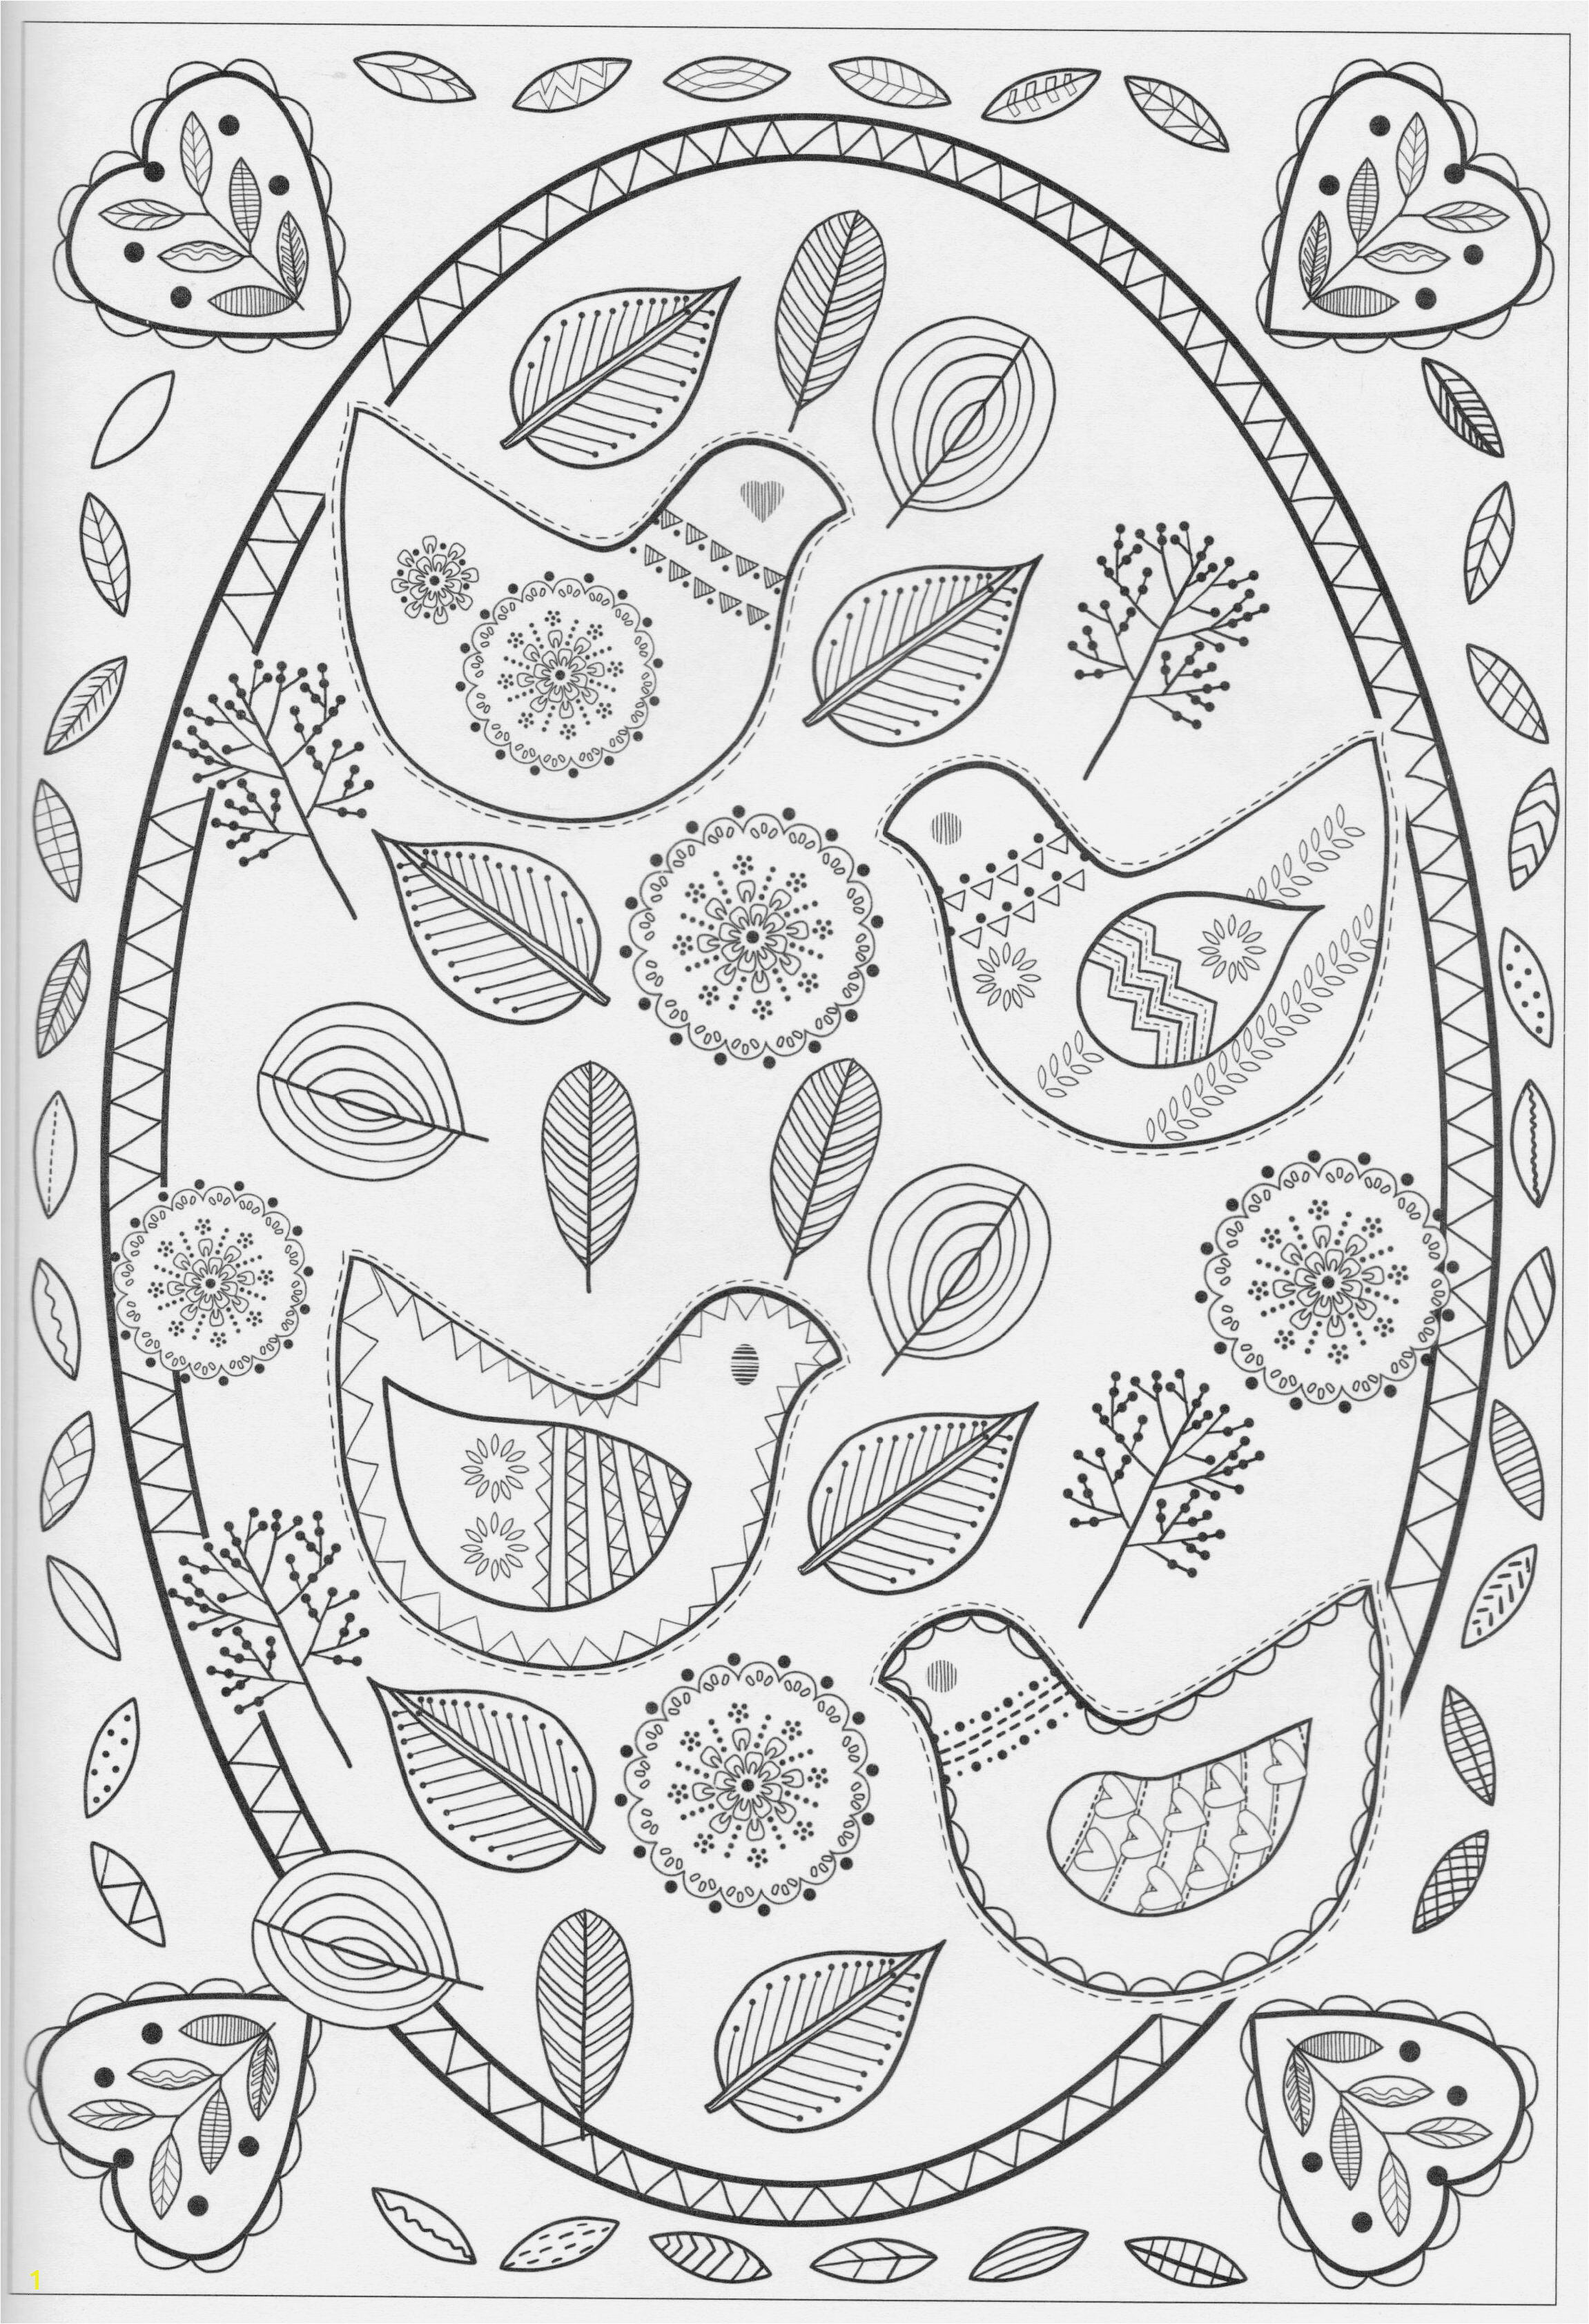 Parrot Coloring Pages Coloring Pages Parrots Coloring Pages Animals New to Color Parrot Coloring Pages